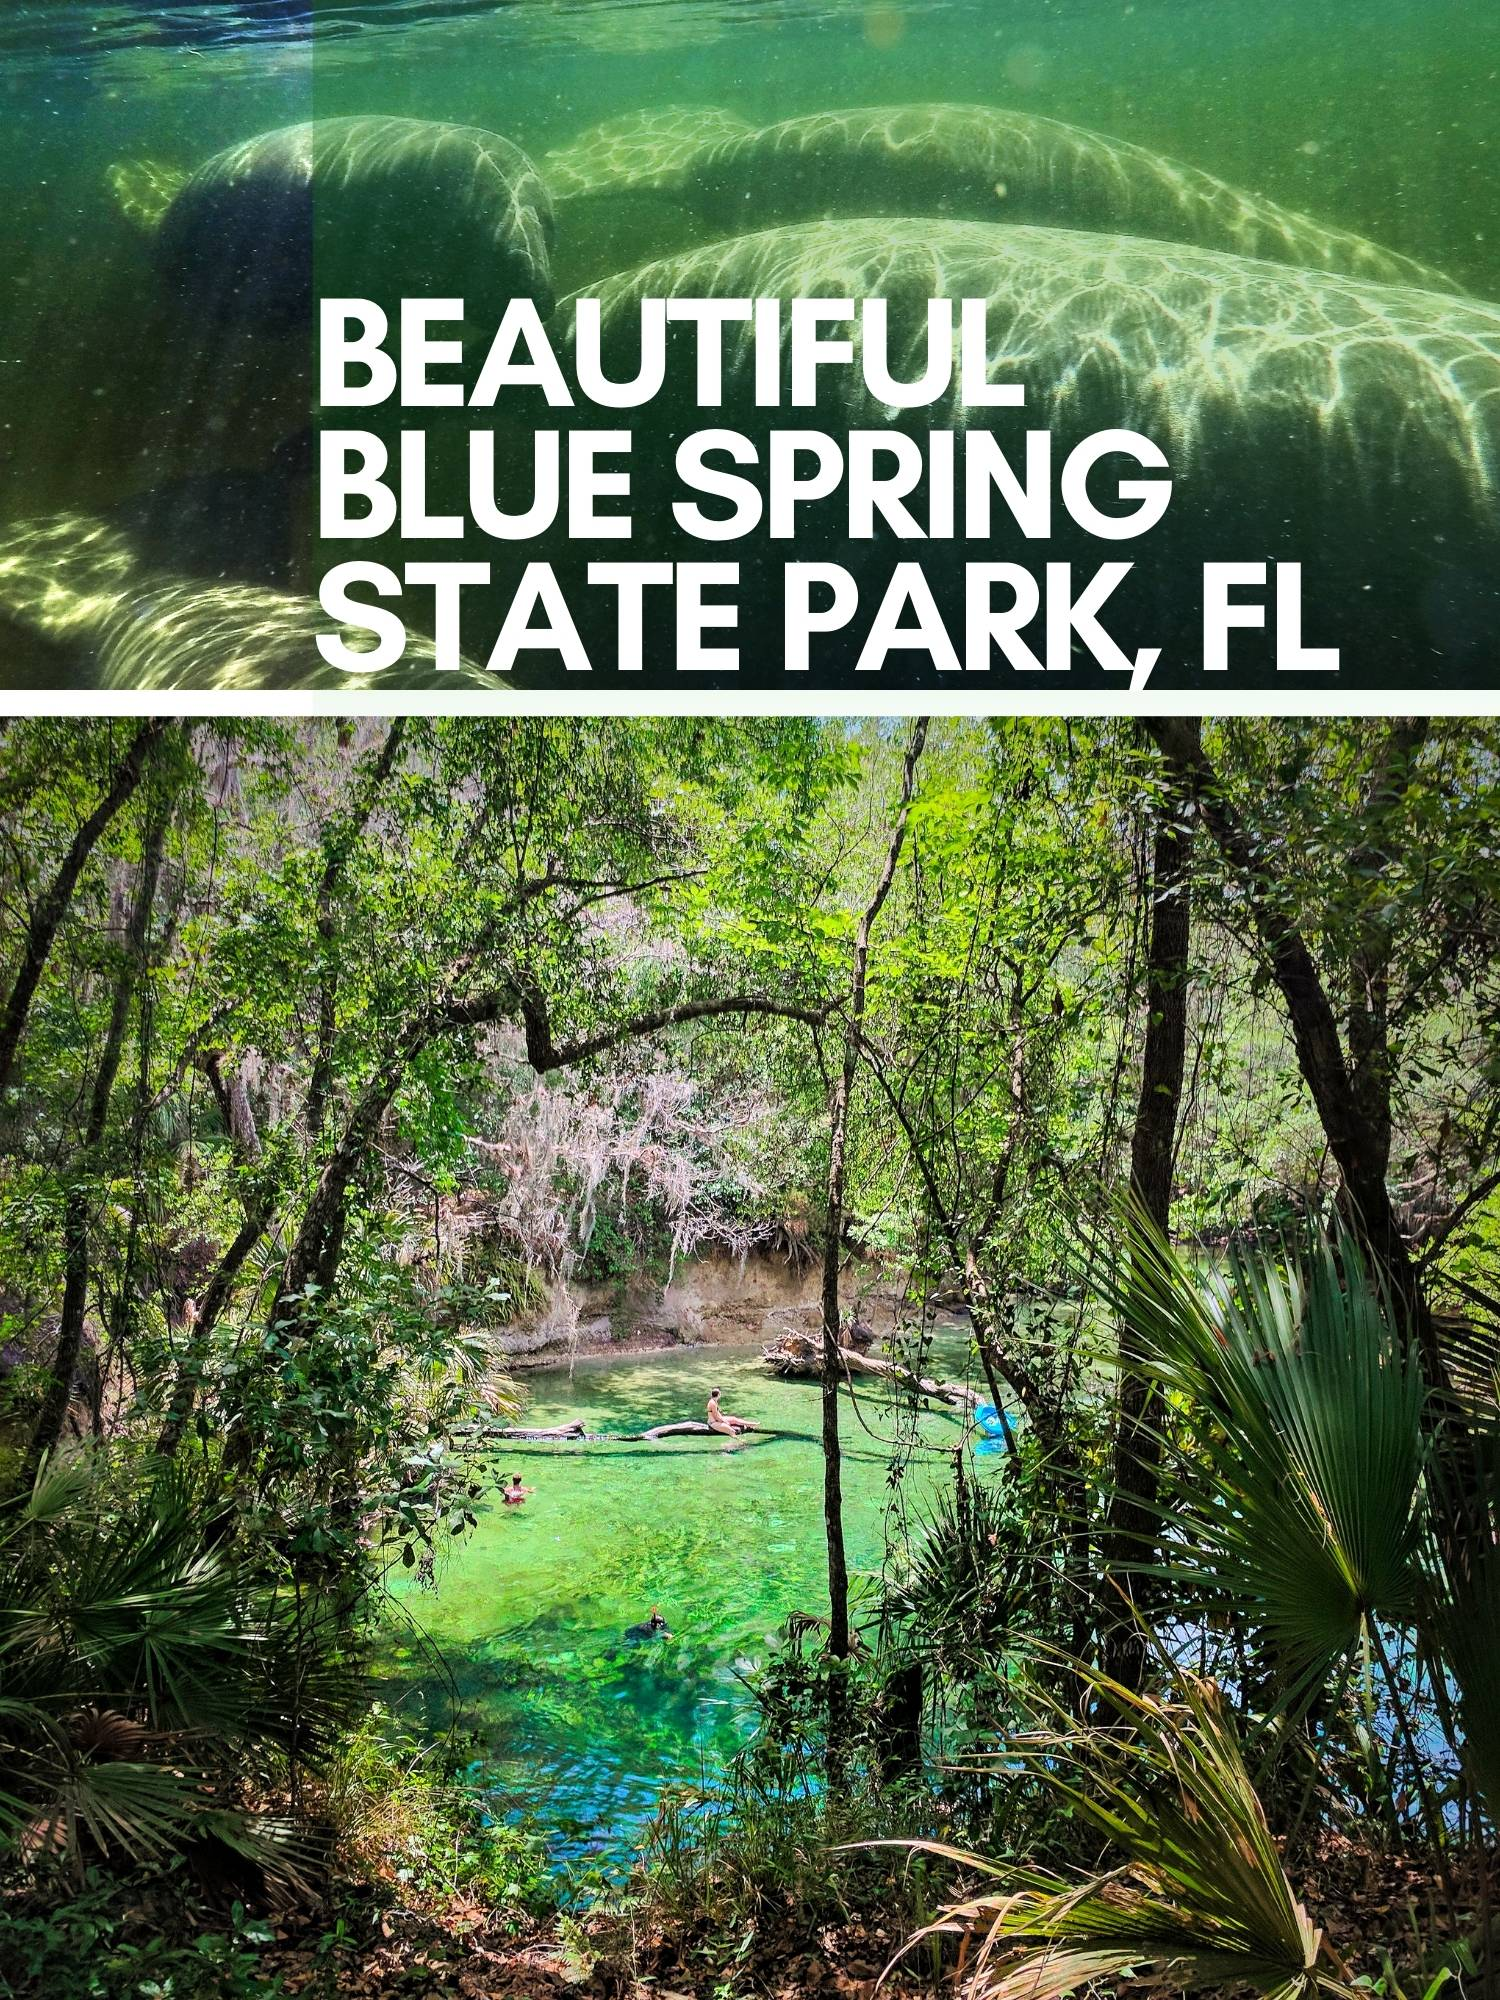 Everything you need to know about Blue Spring State Park, seeing manatees in Florida and swimming in the most beautiful Florida spring water. Things to do, how to get there, and rules for paddling with manatees.